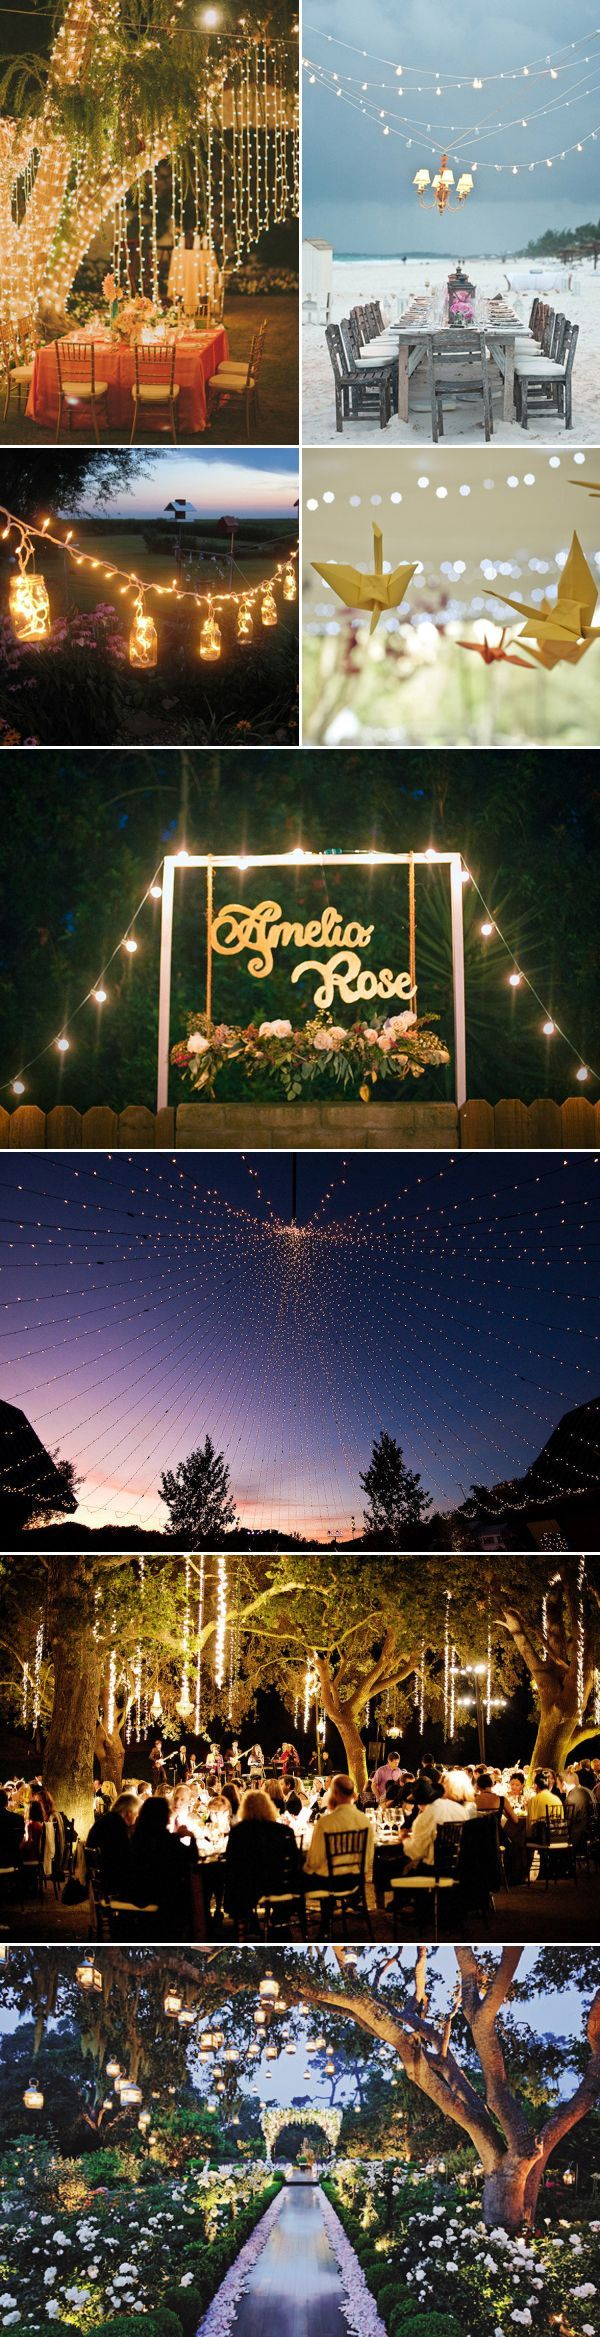 Hanging lights wedding decor   Magical String and Hanging Light Wedding Decorations and Wedding